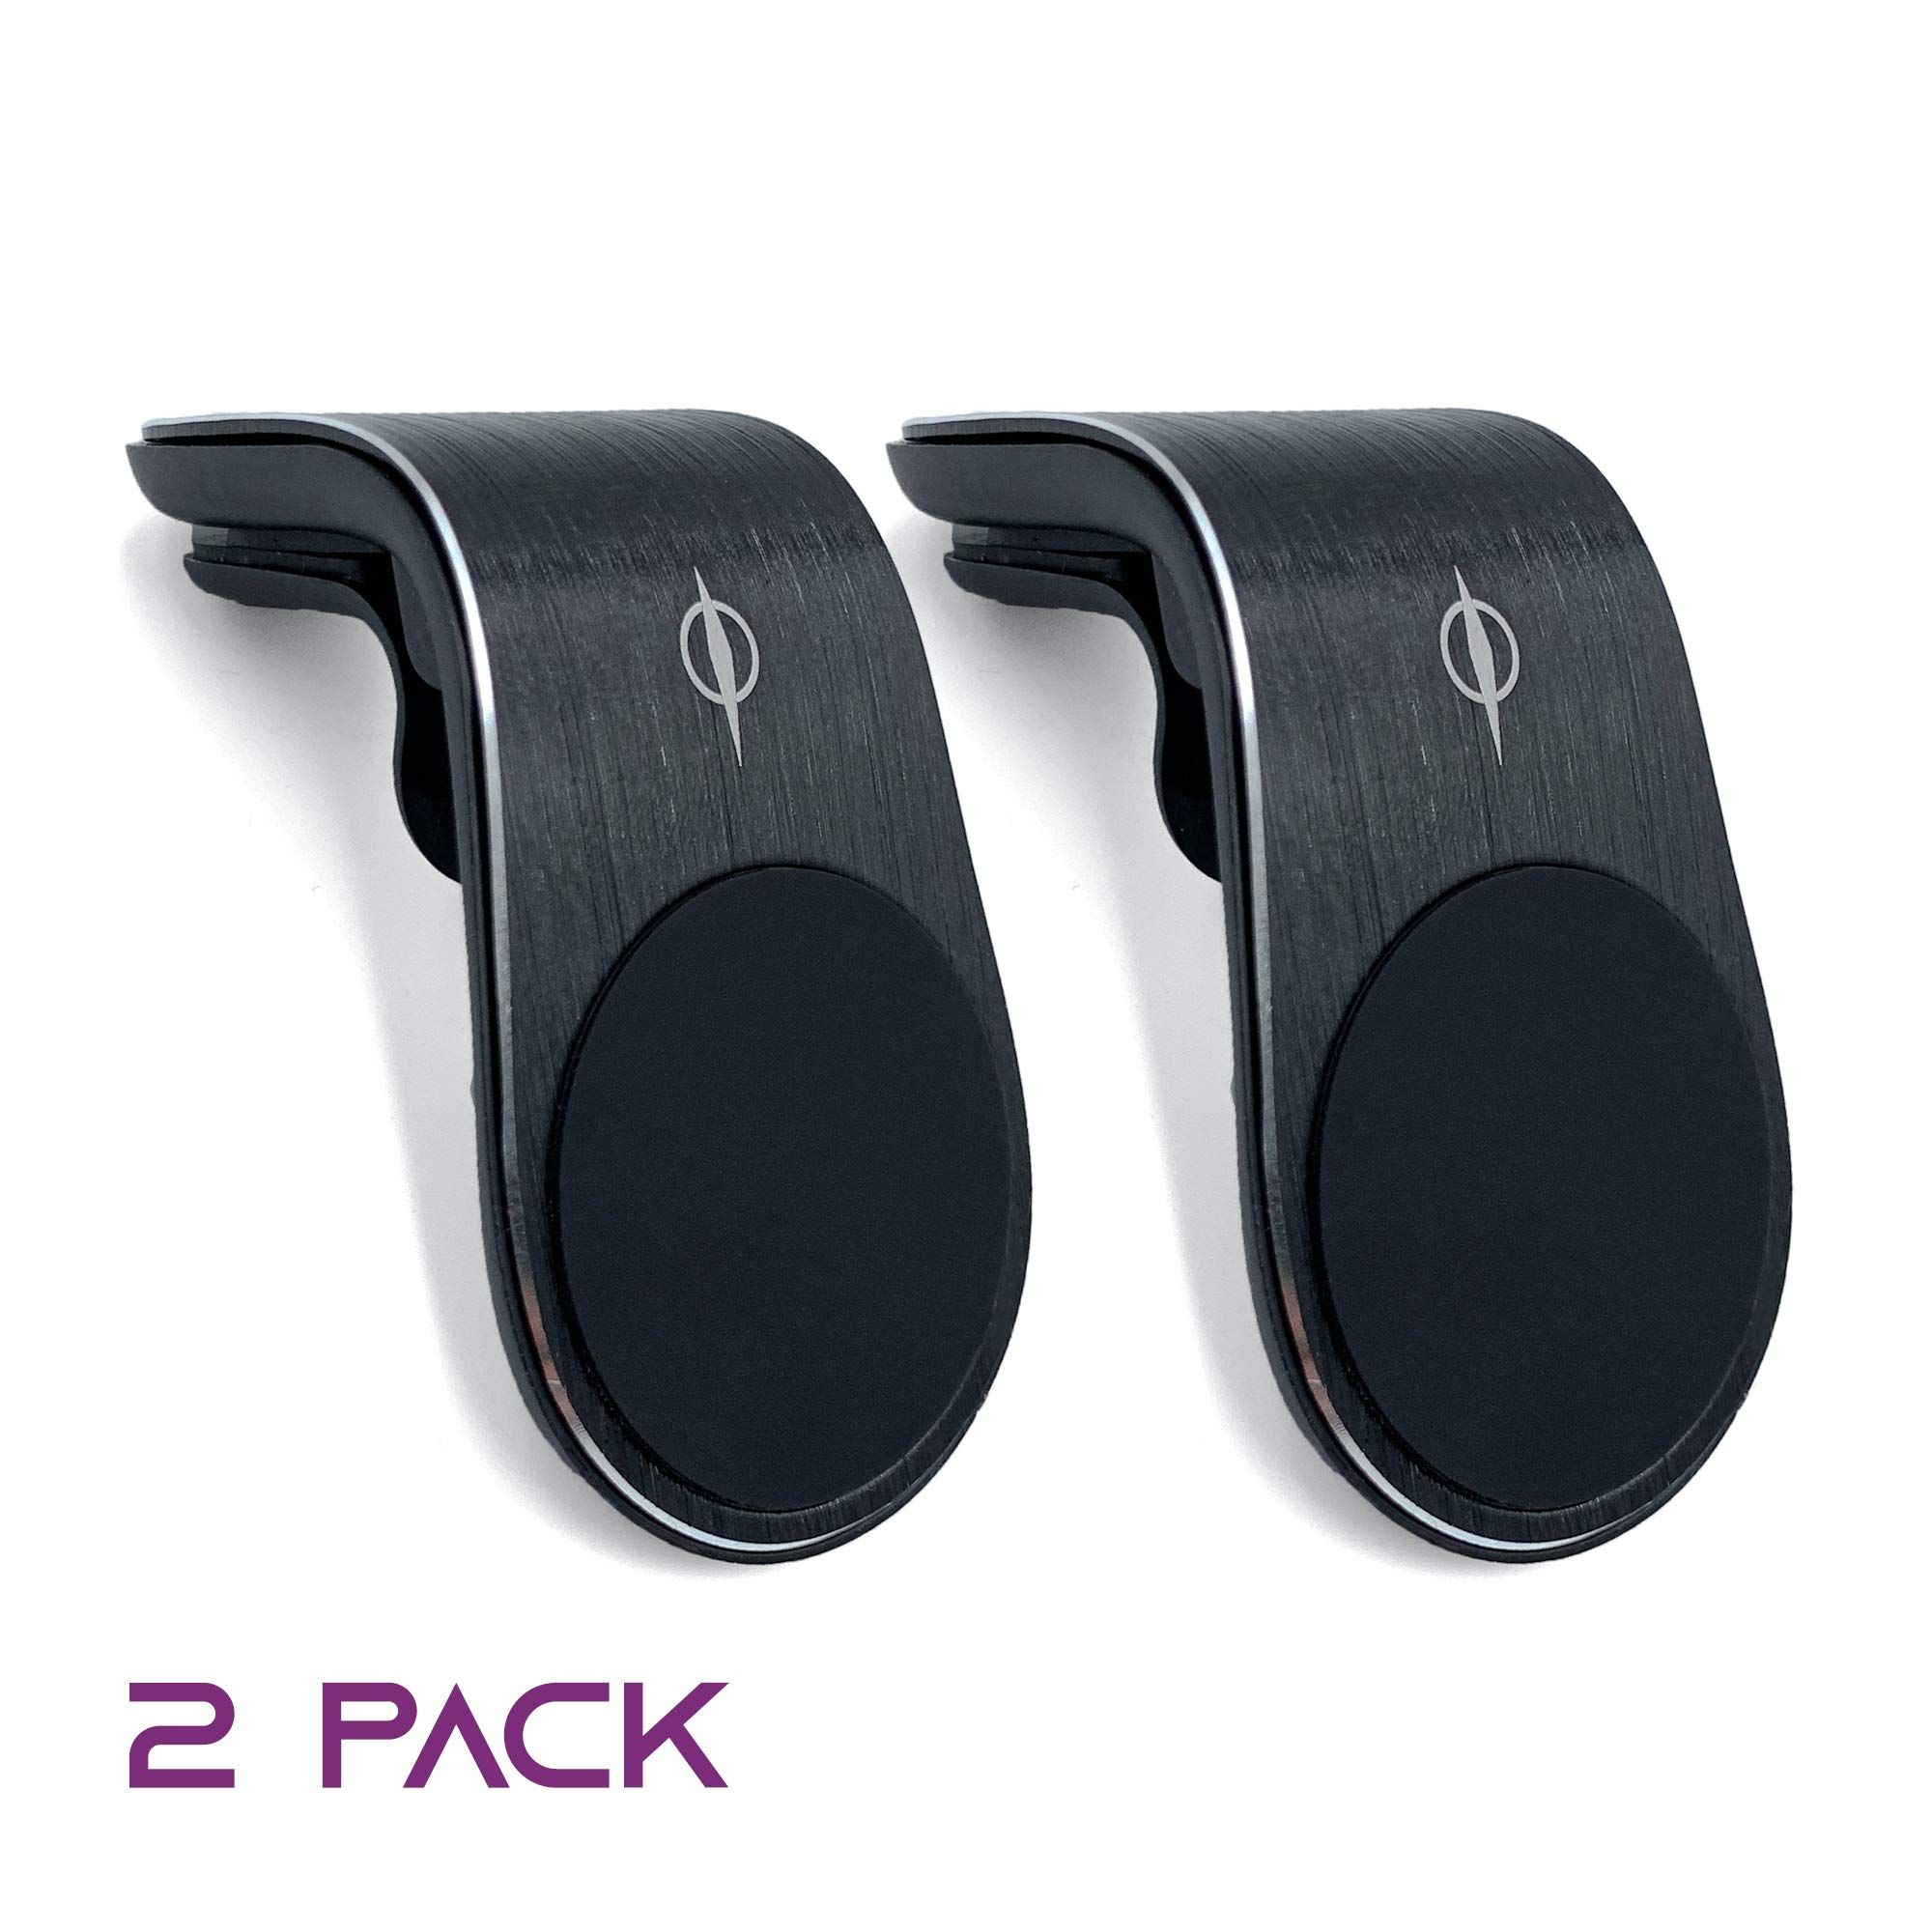 2 Pack Magnetic Phone Car Mount Puls-O Car Cell Phone Mount Magnet Hands Free Universal Smart Phone Holder for Car Air Vent Mount for iPhone 11 Pro XS X 8 7 Plus Samsung Galaxy S10 S9 S8 Note 10 GPS